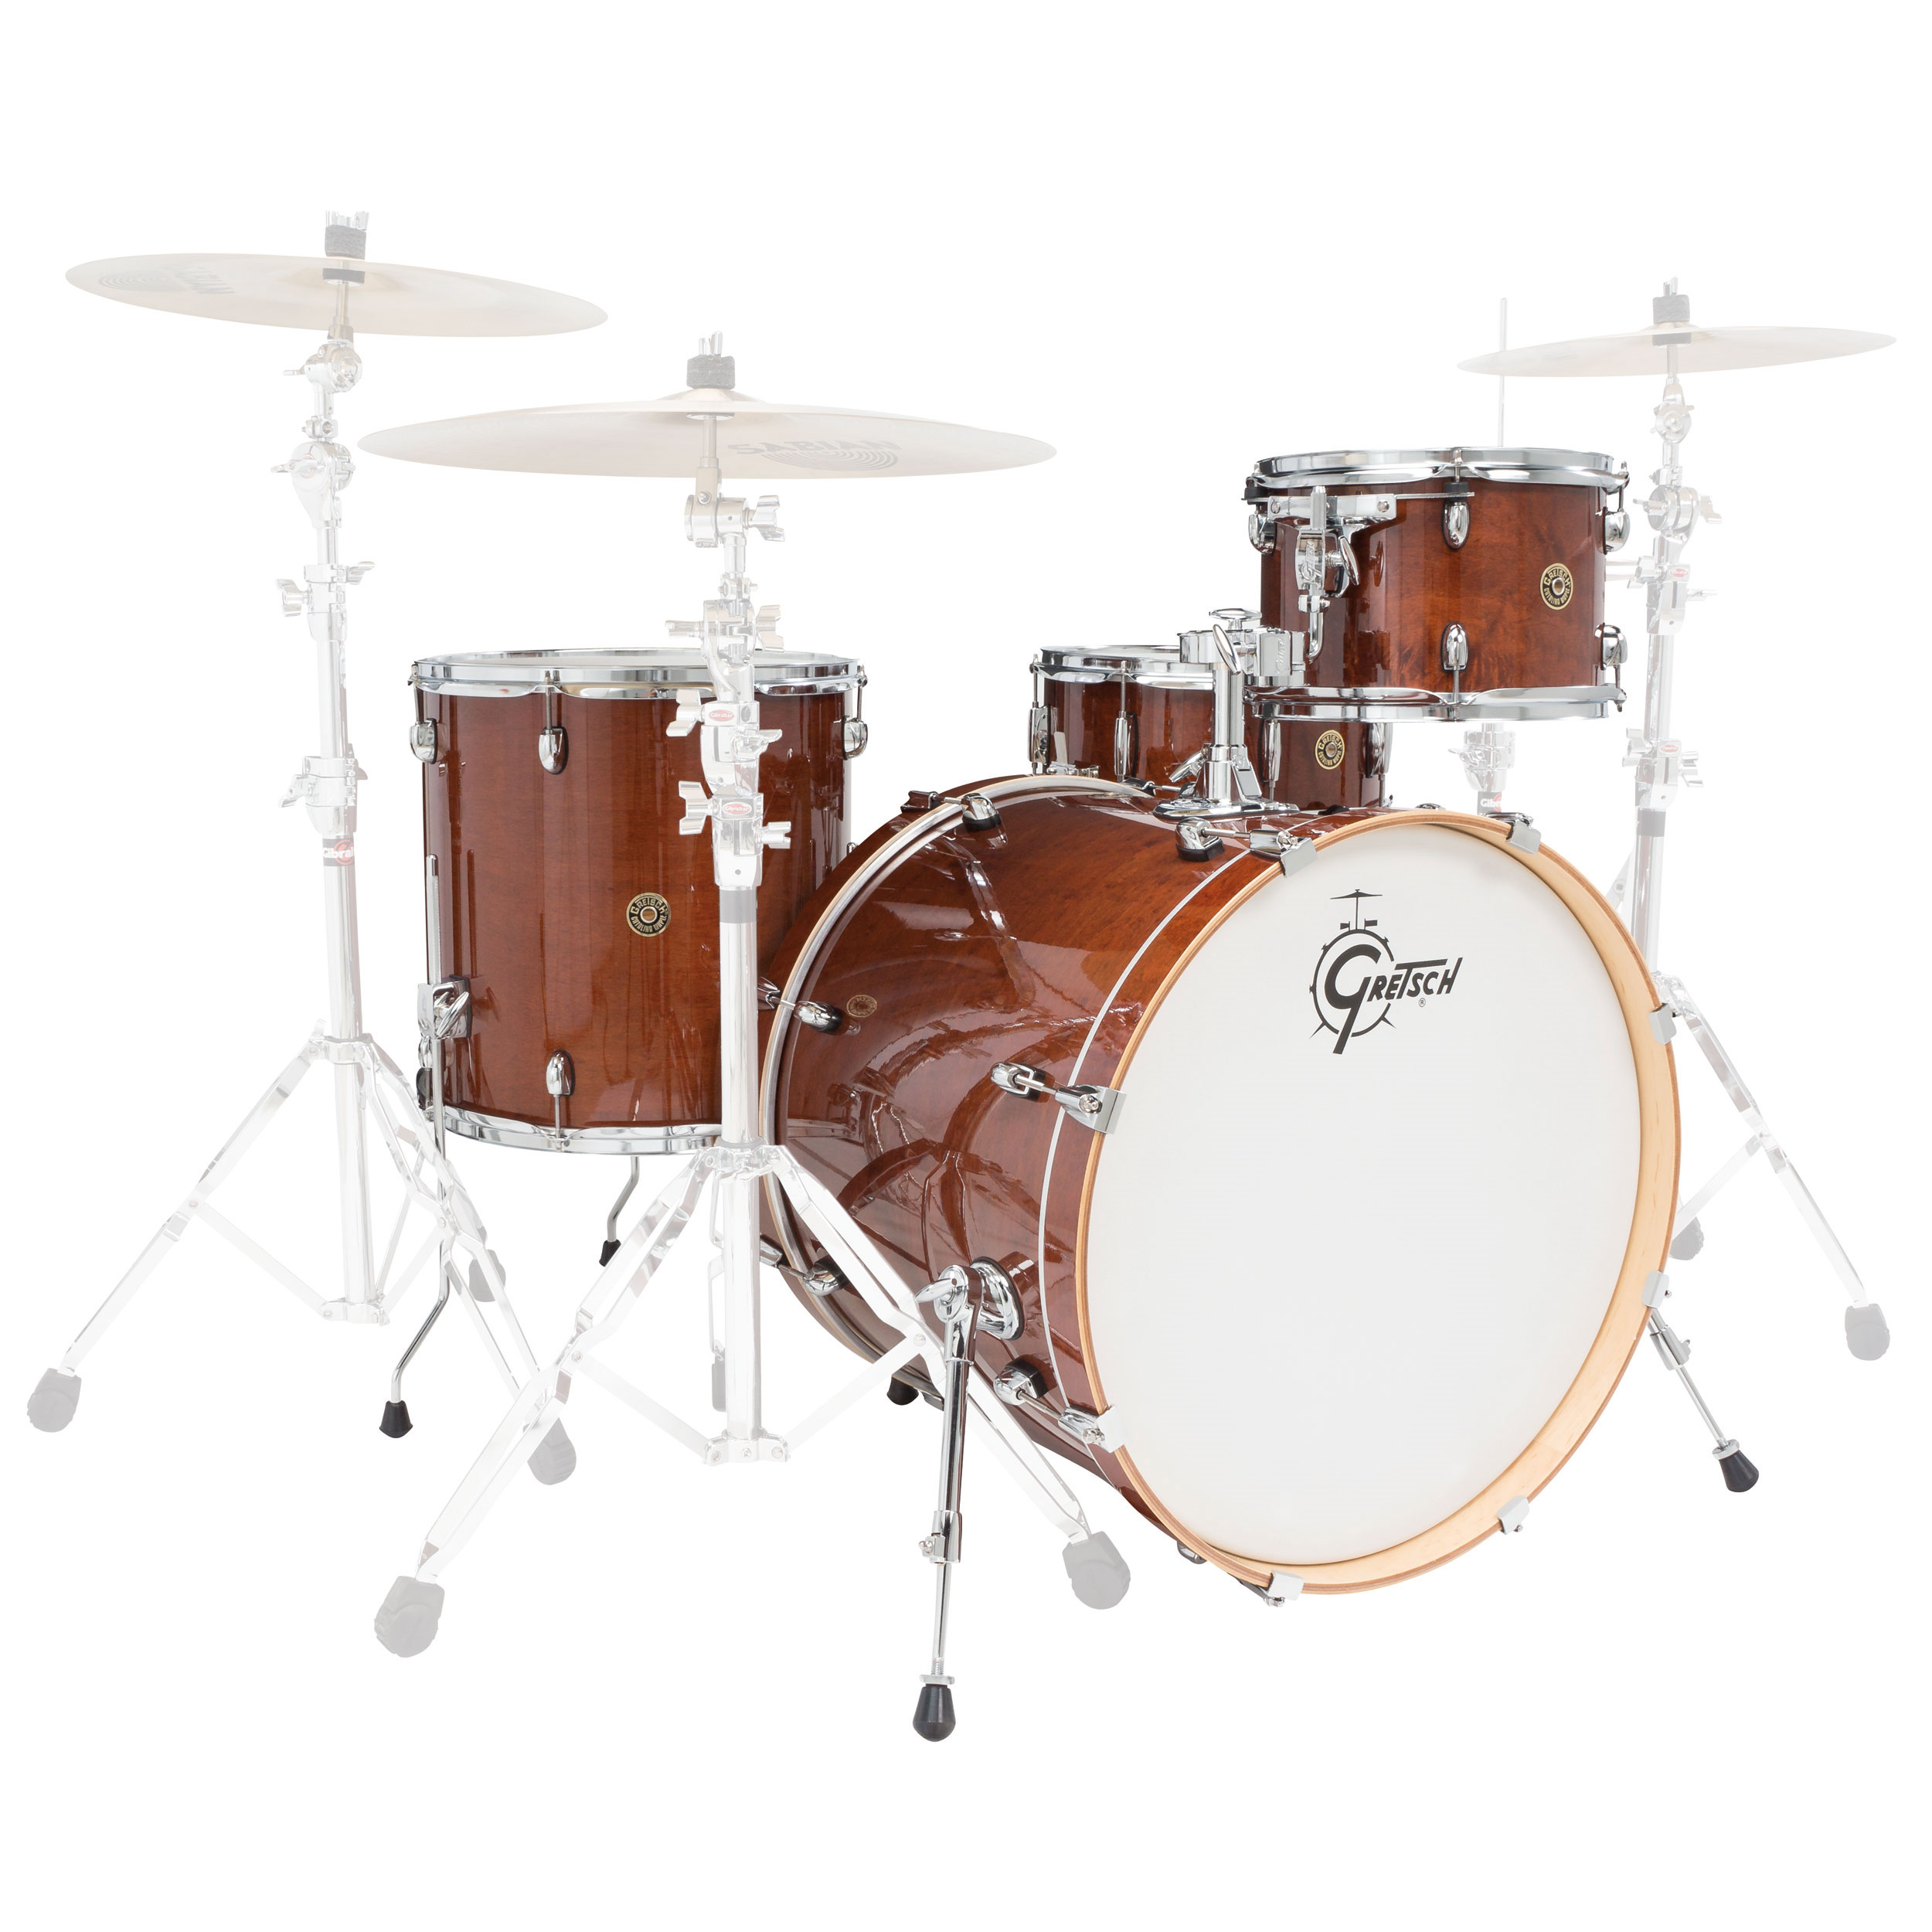 gretsch catalina maple 4 piece rock shell pack 22 bass 12 16 toms 14 snare cm1 e824s. Black Bedroom Furniture Sets. Home Design Ideas